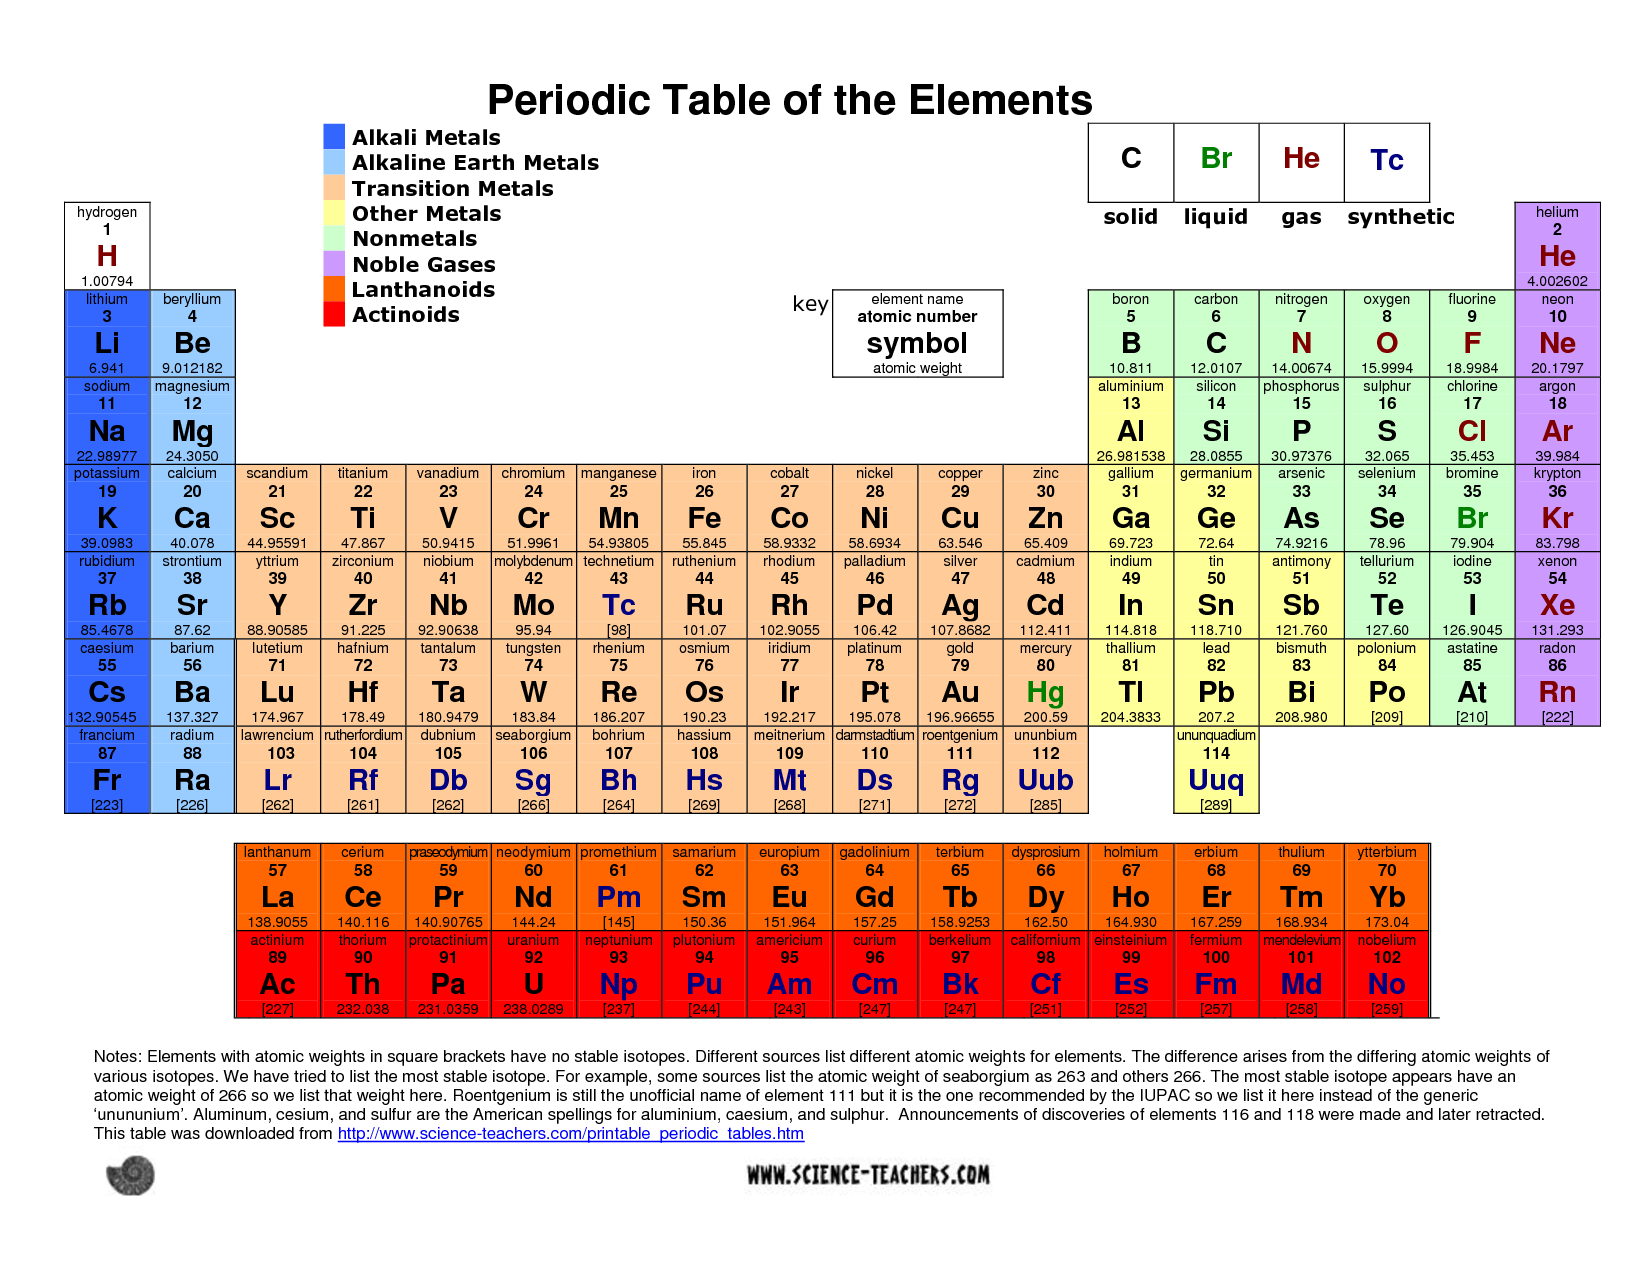 Periodic table of elements quotes equipment rental agreement periodic table of elements quotes urtaz Image collections